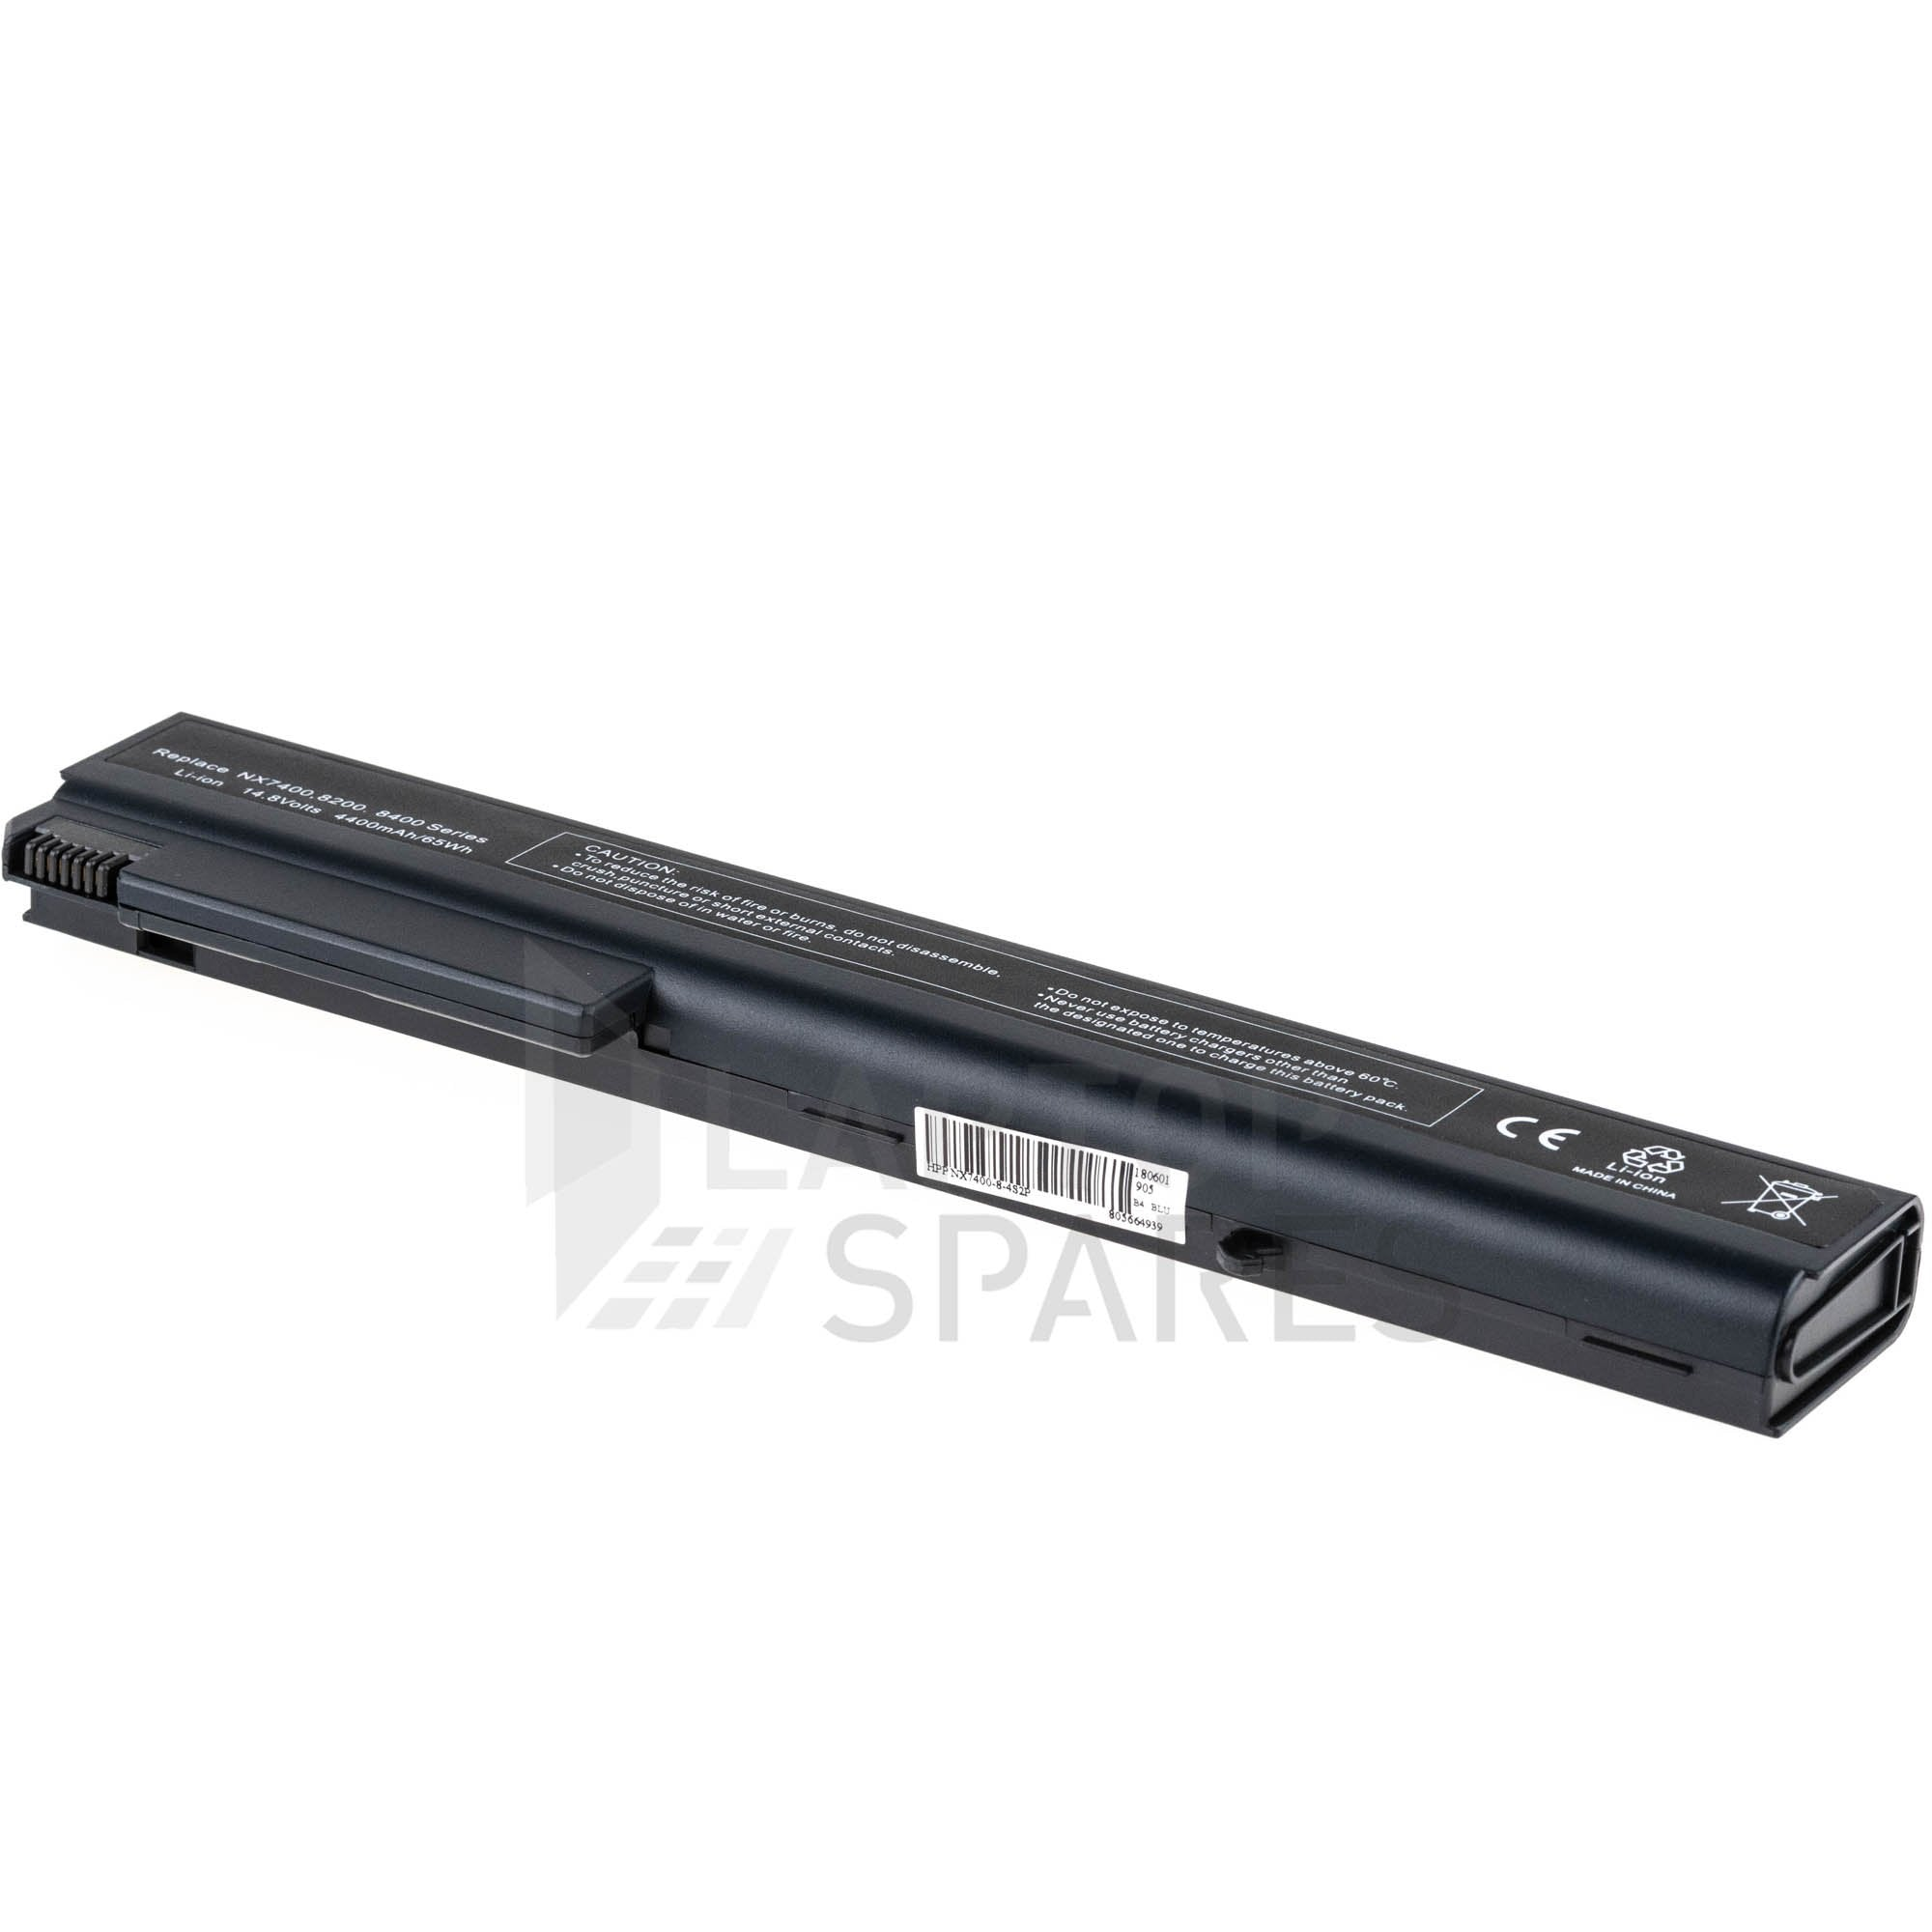 HP Business Notebook NW8440 4400mAh 6 Cell Battery